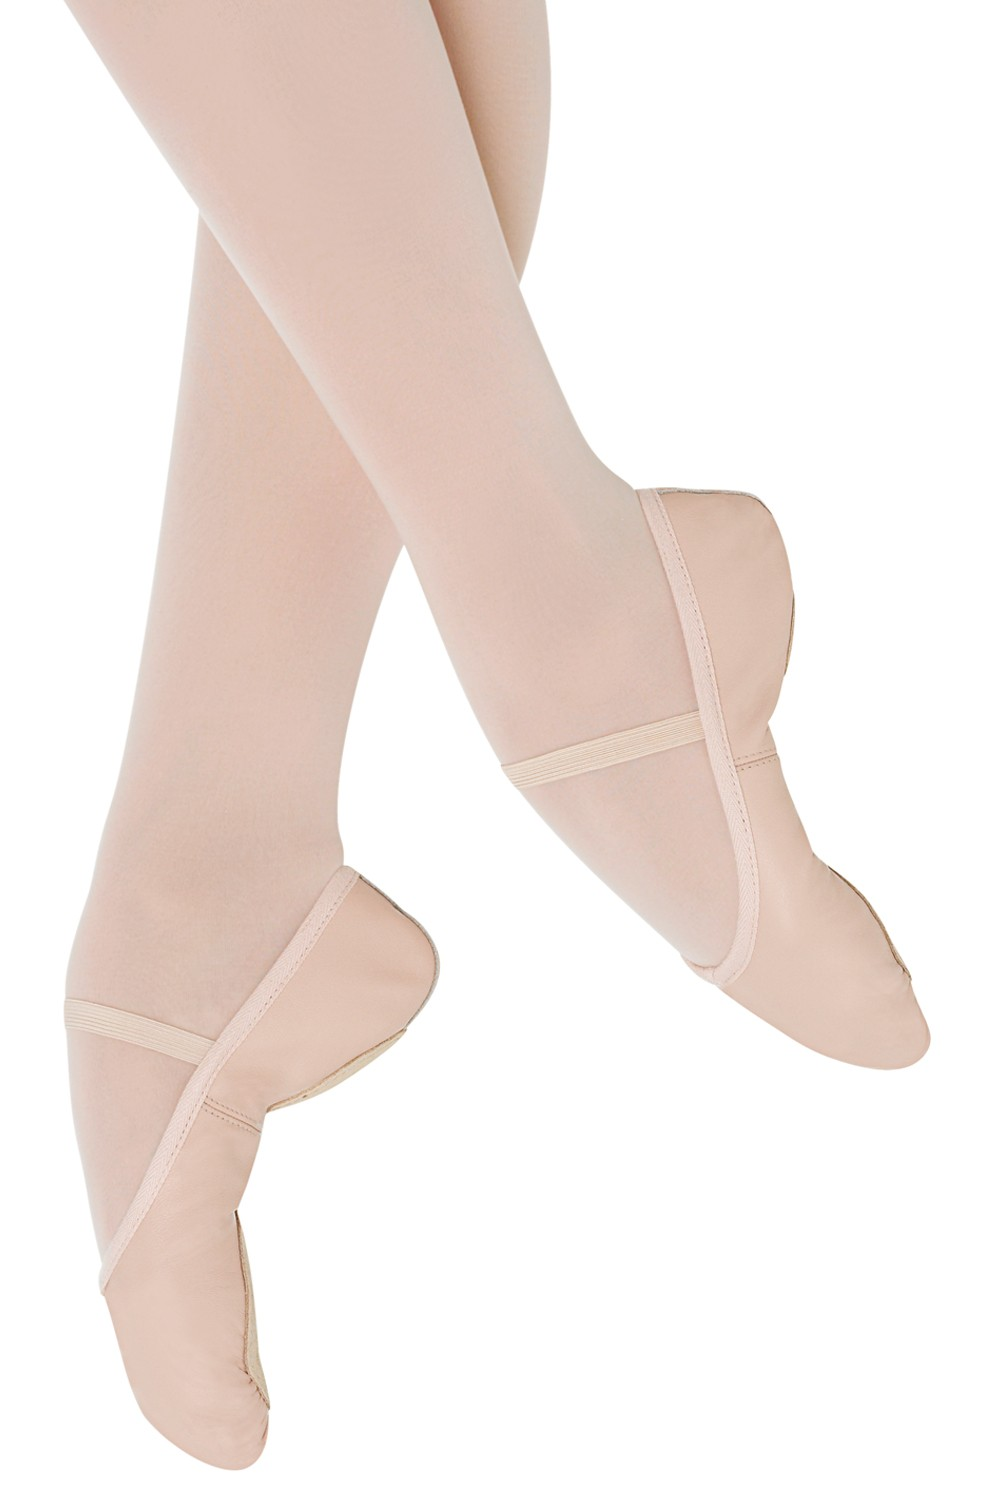 Debut Ii Women's Ballet Shoes